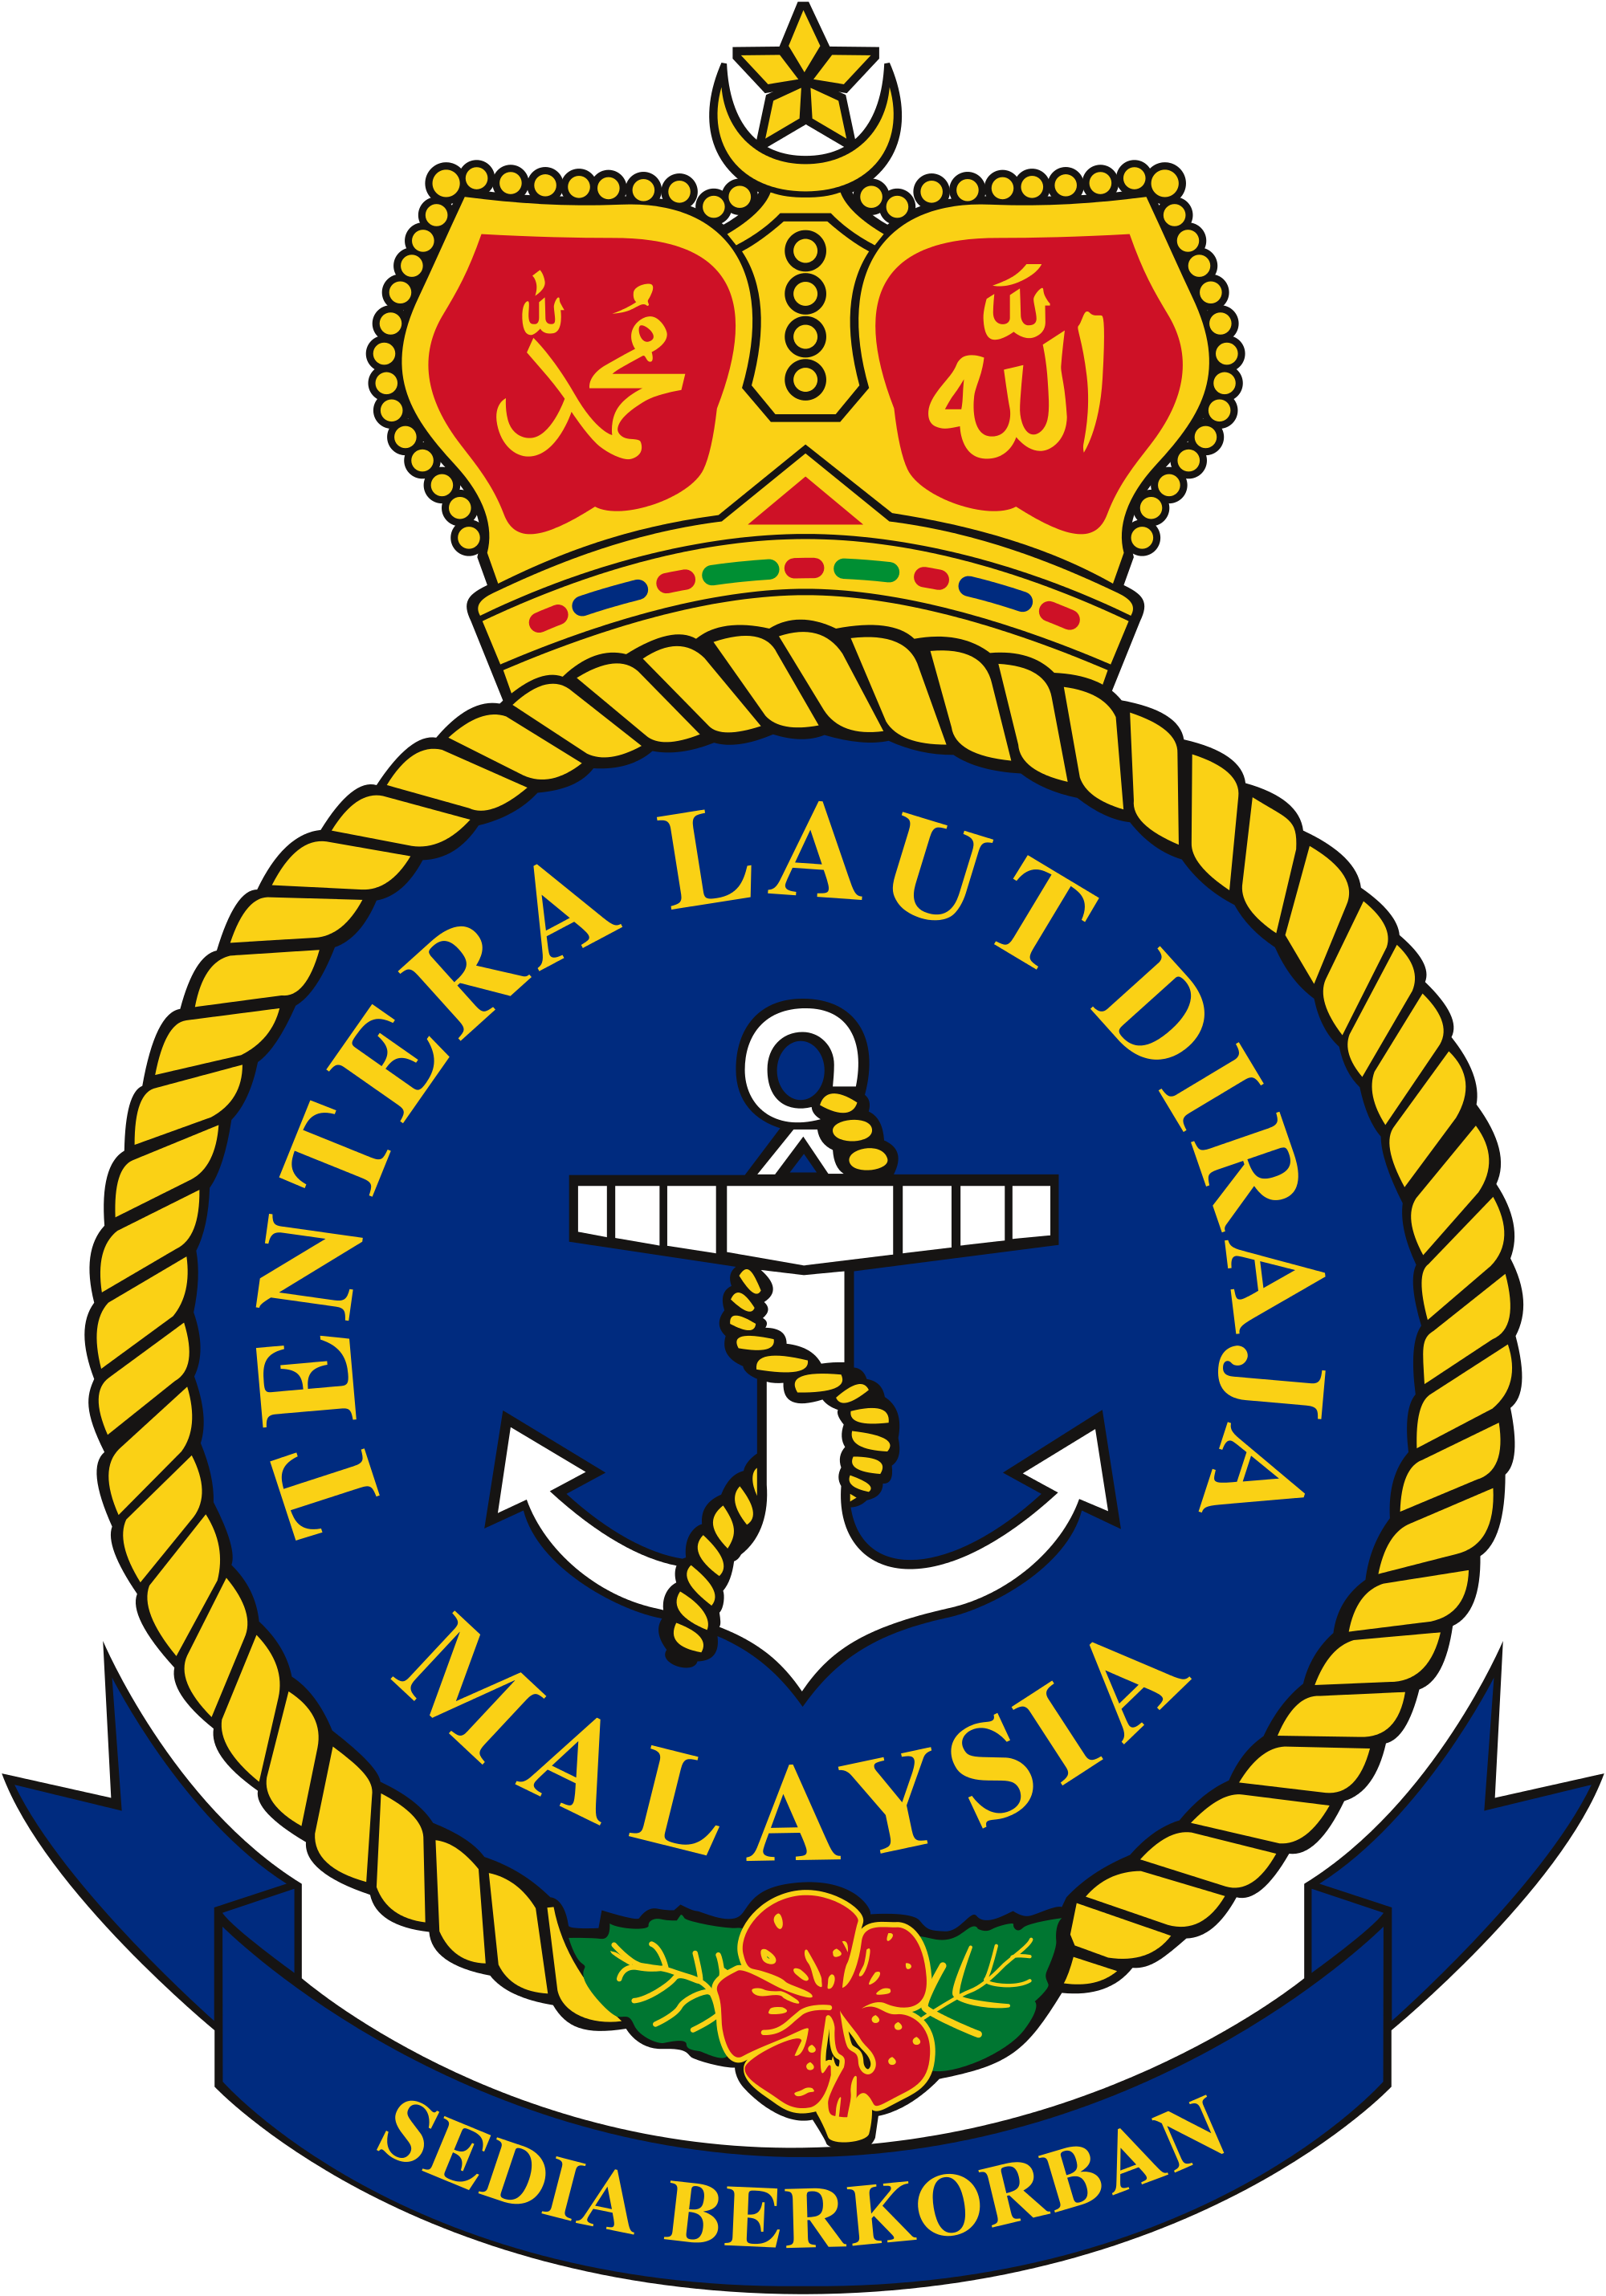 Navy clipart crest. File of the royal